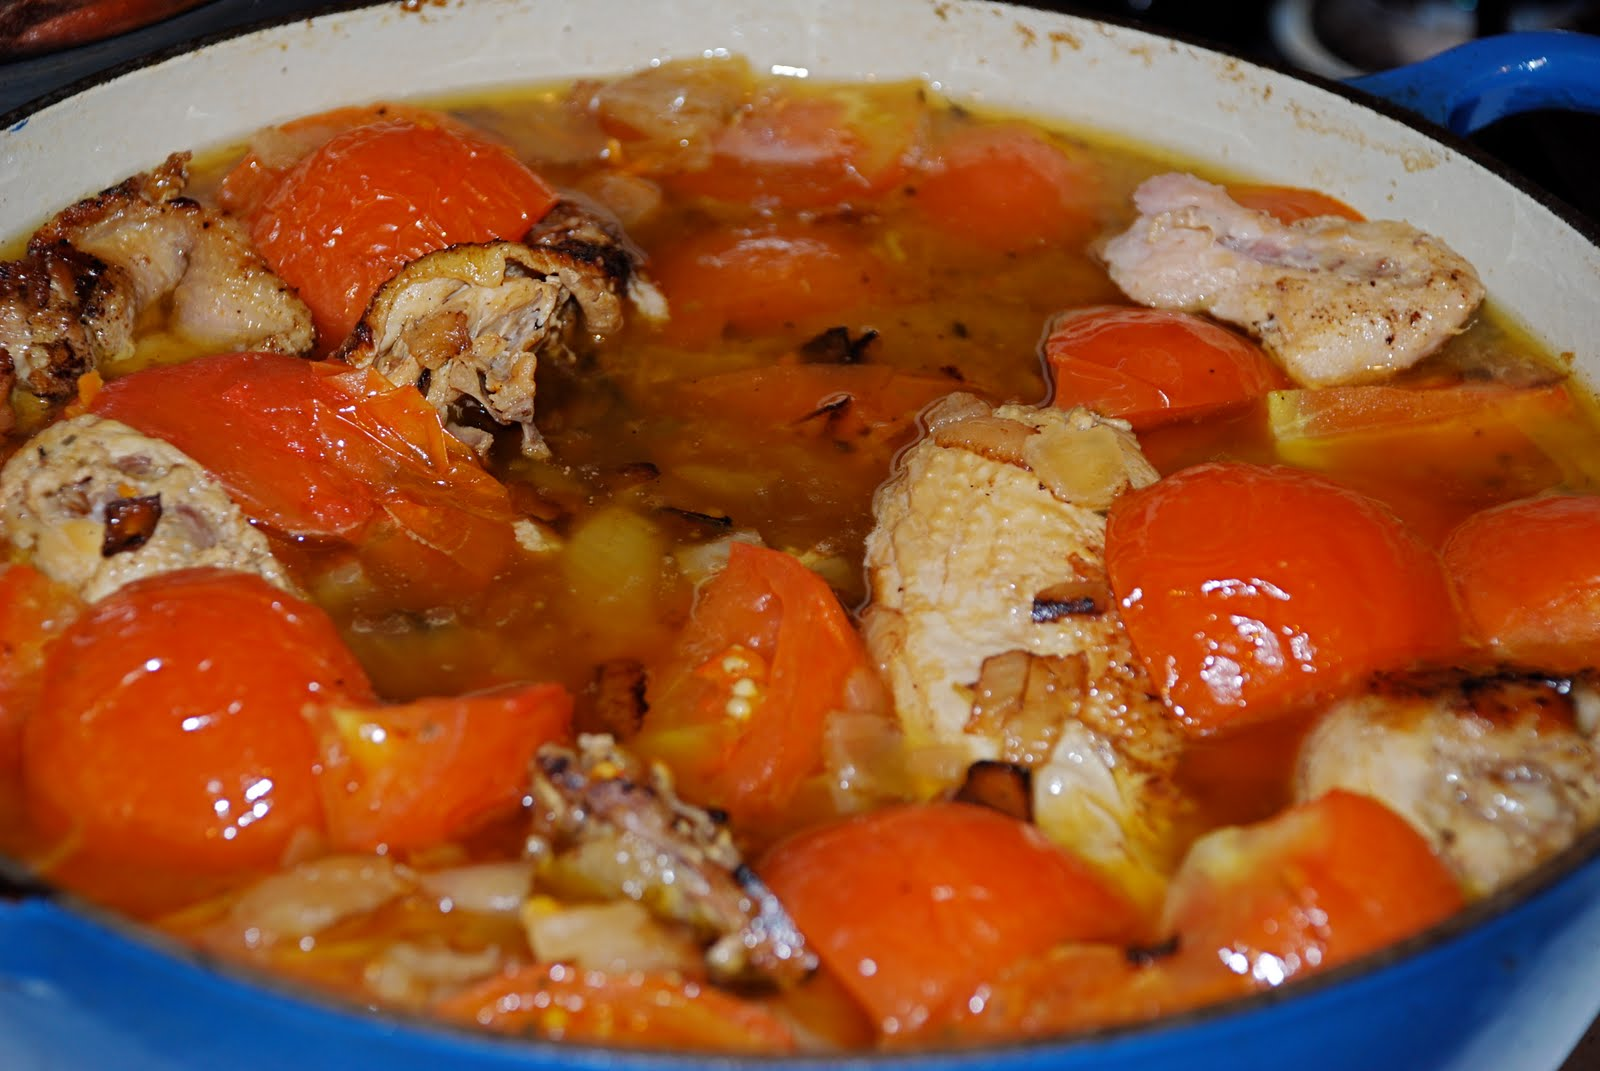 Cooking off book poularde pour ma m re chicken marie lousie for Auguste escoffier ma cuisine book